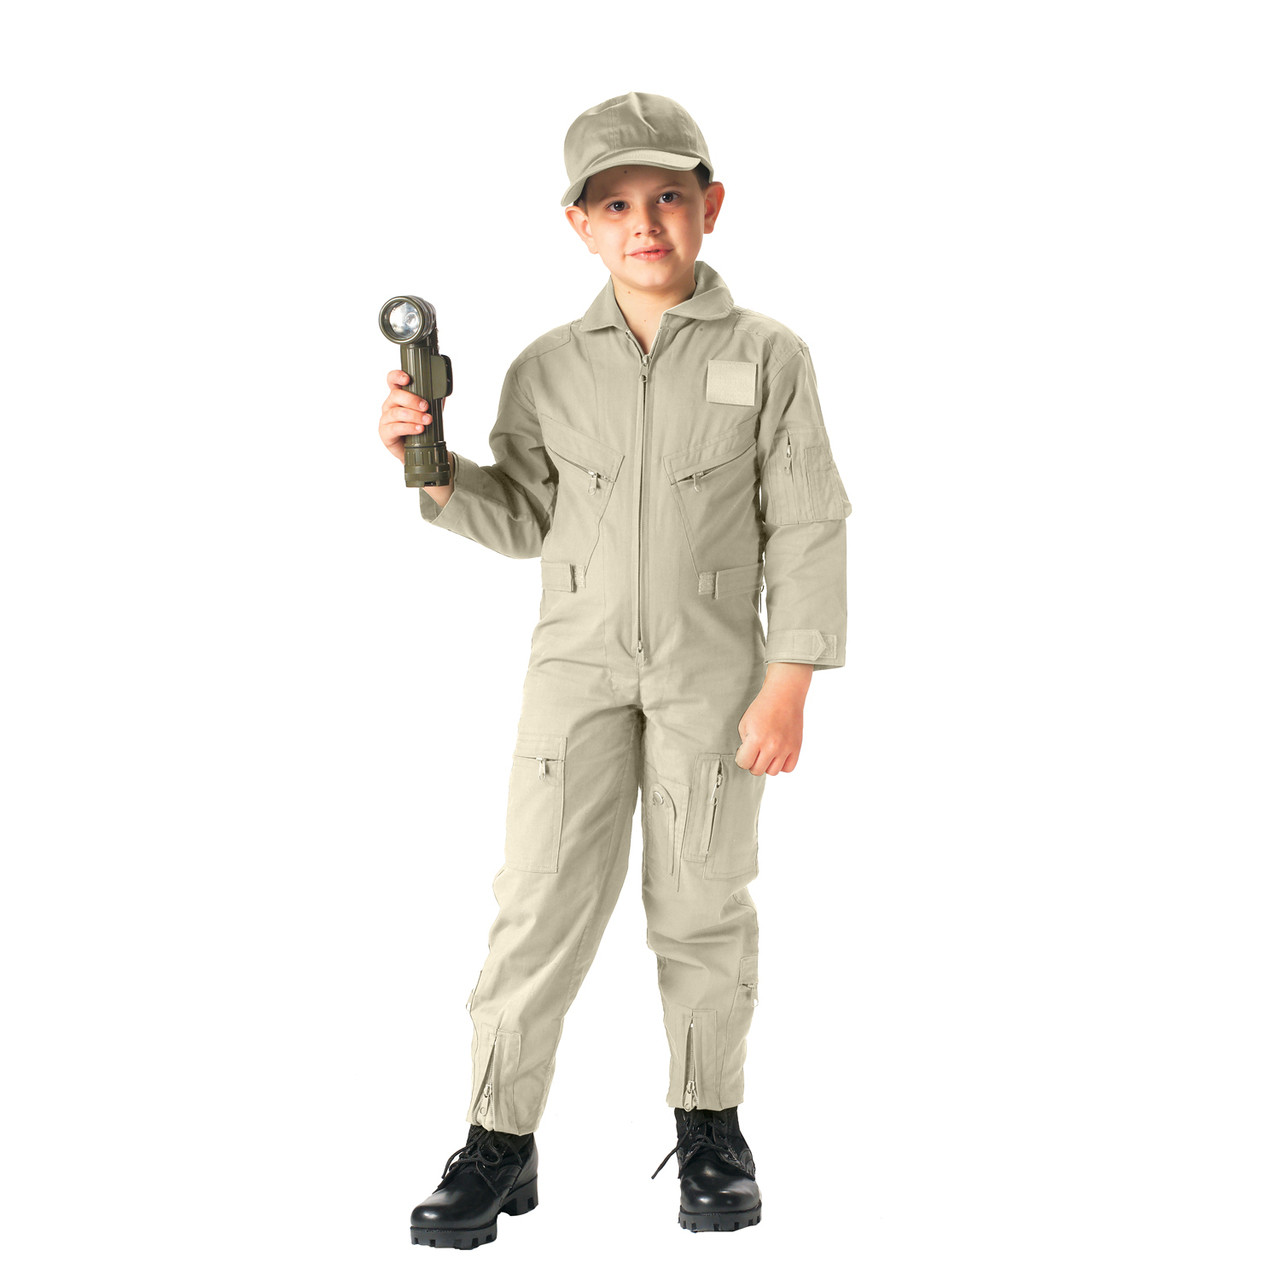 aaae3eb65fe Shop Kids Khaki Flight Suits - Fatigues Army Navy Gear